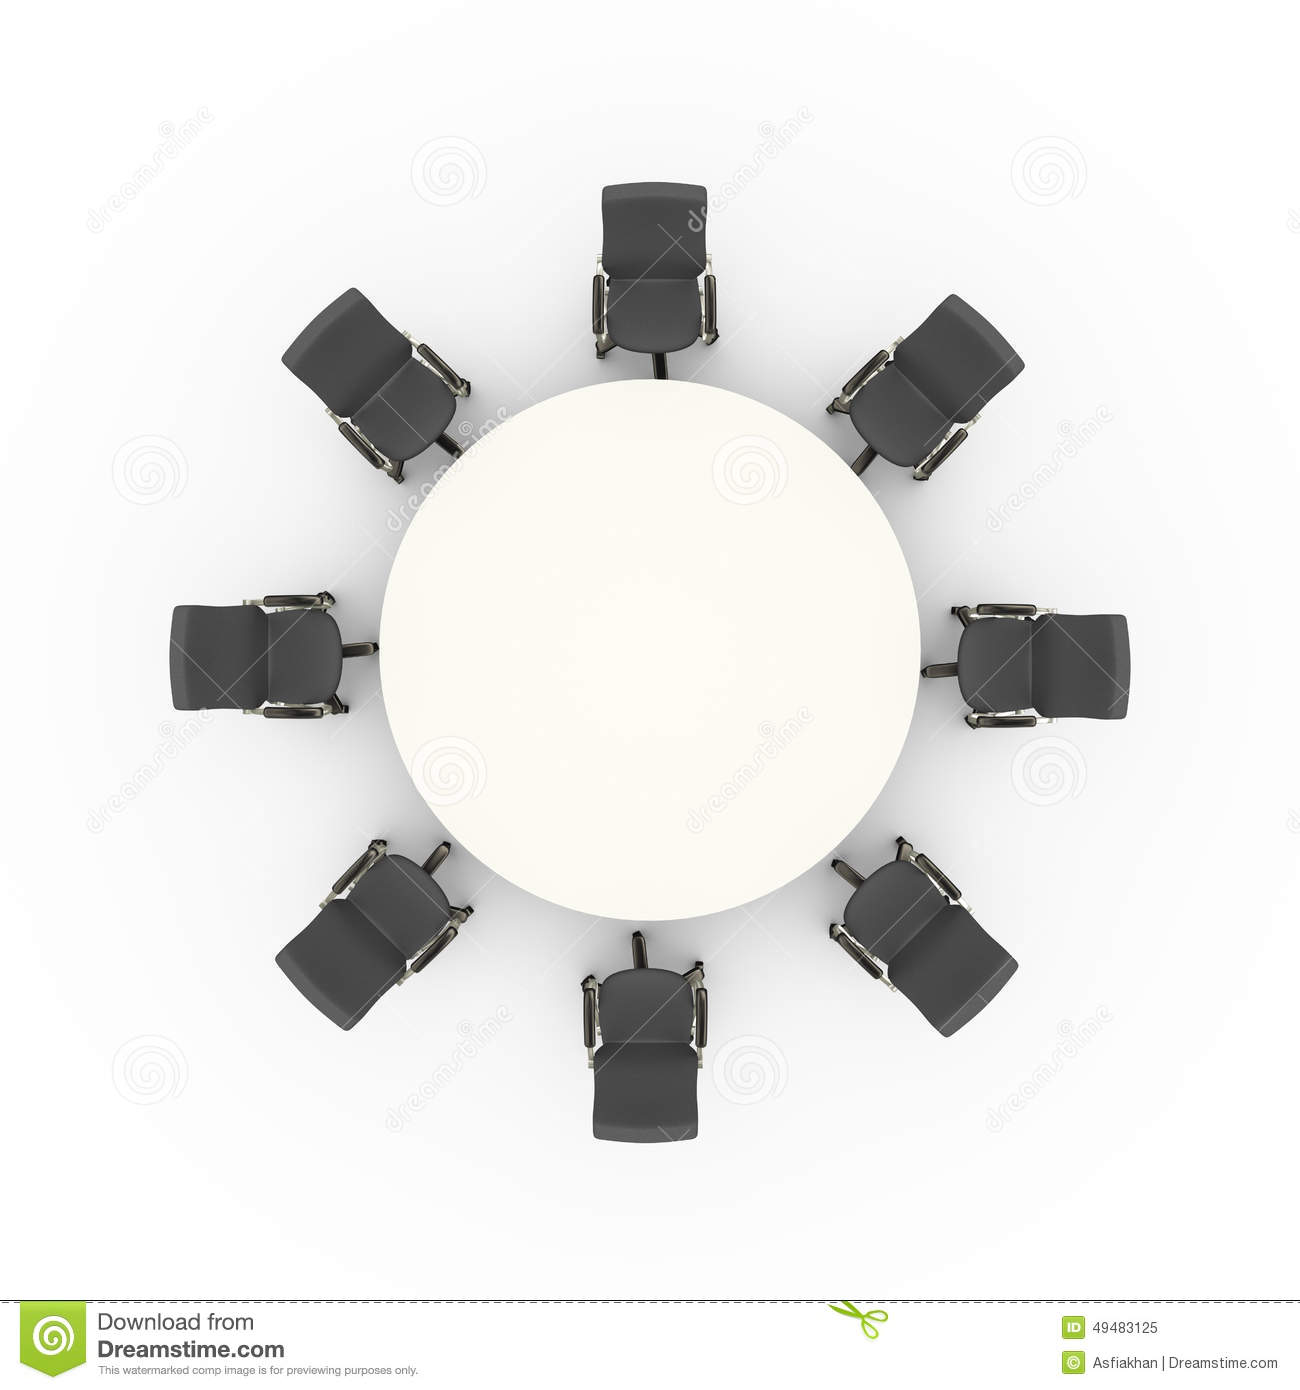 3d Business Meeting Conference Table Stock Illustration  : d business meeting conference table illustration top view office chairs round 49483125 from www.dreamstime.com size 1300 x 1390 jpeg 68kB